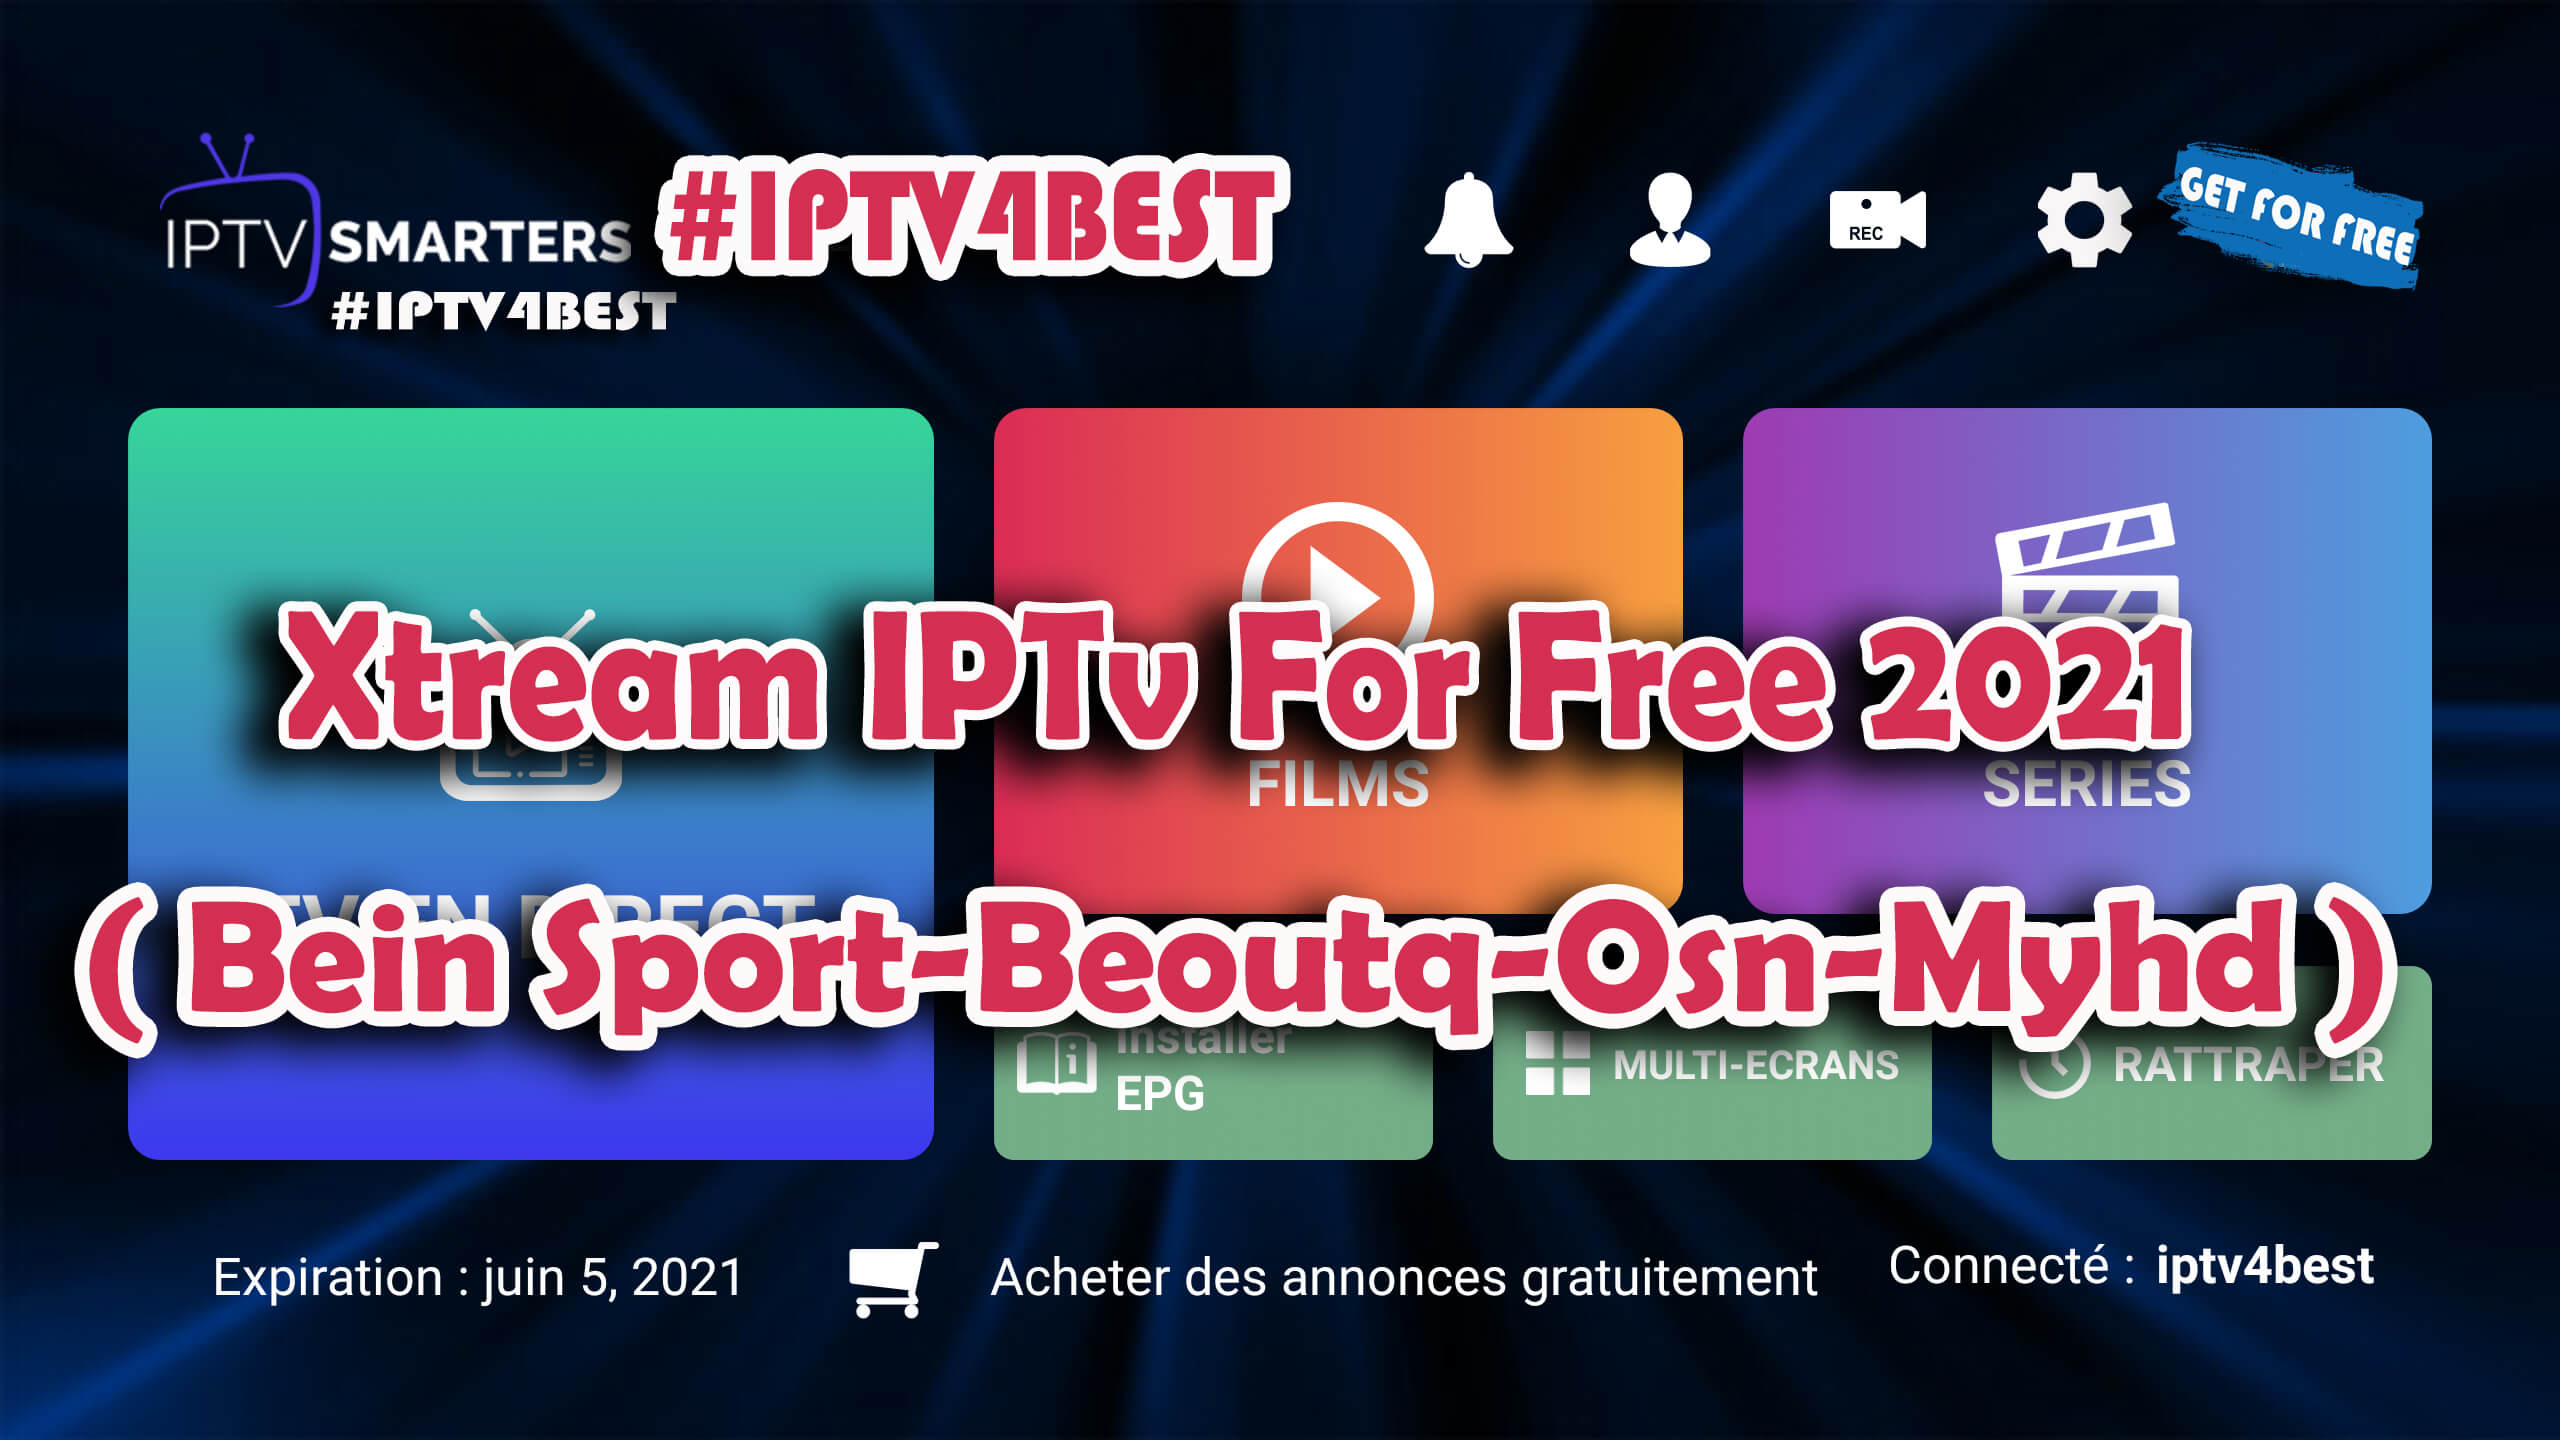 Xtream IPTv ( Bein Sport-Beoutq-Osn-Myhd ) Updated Today By IPTV4BEST.COM